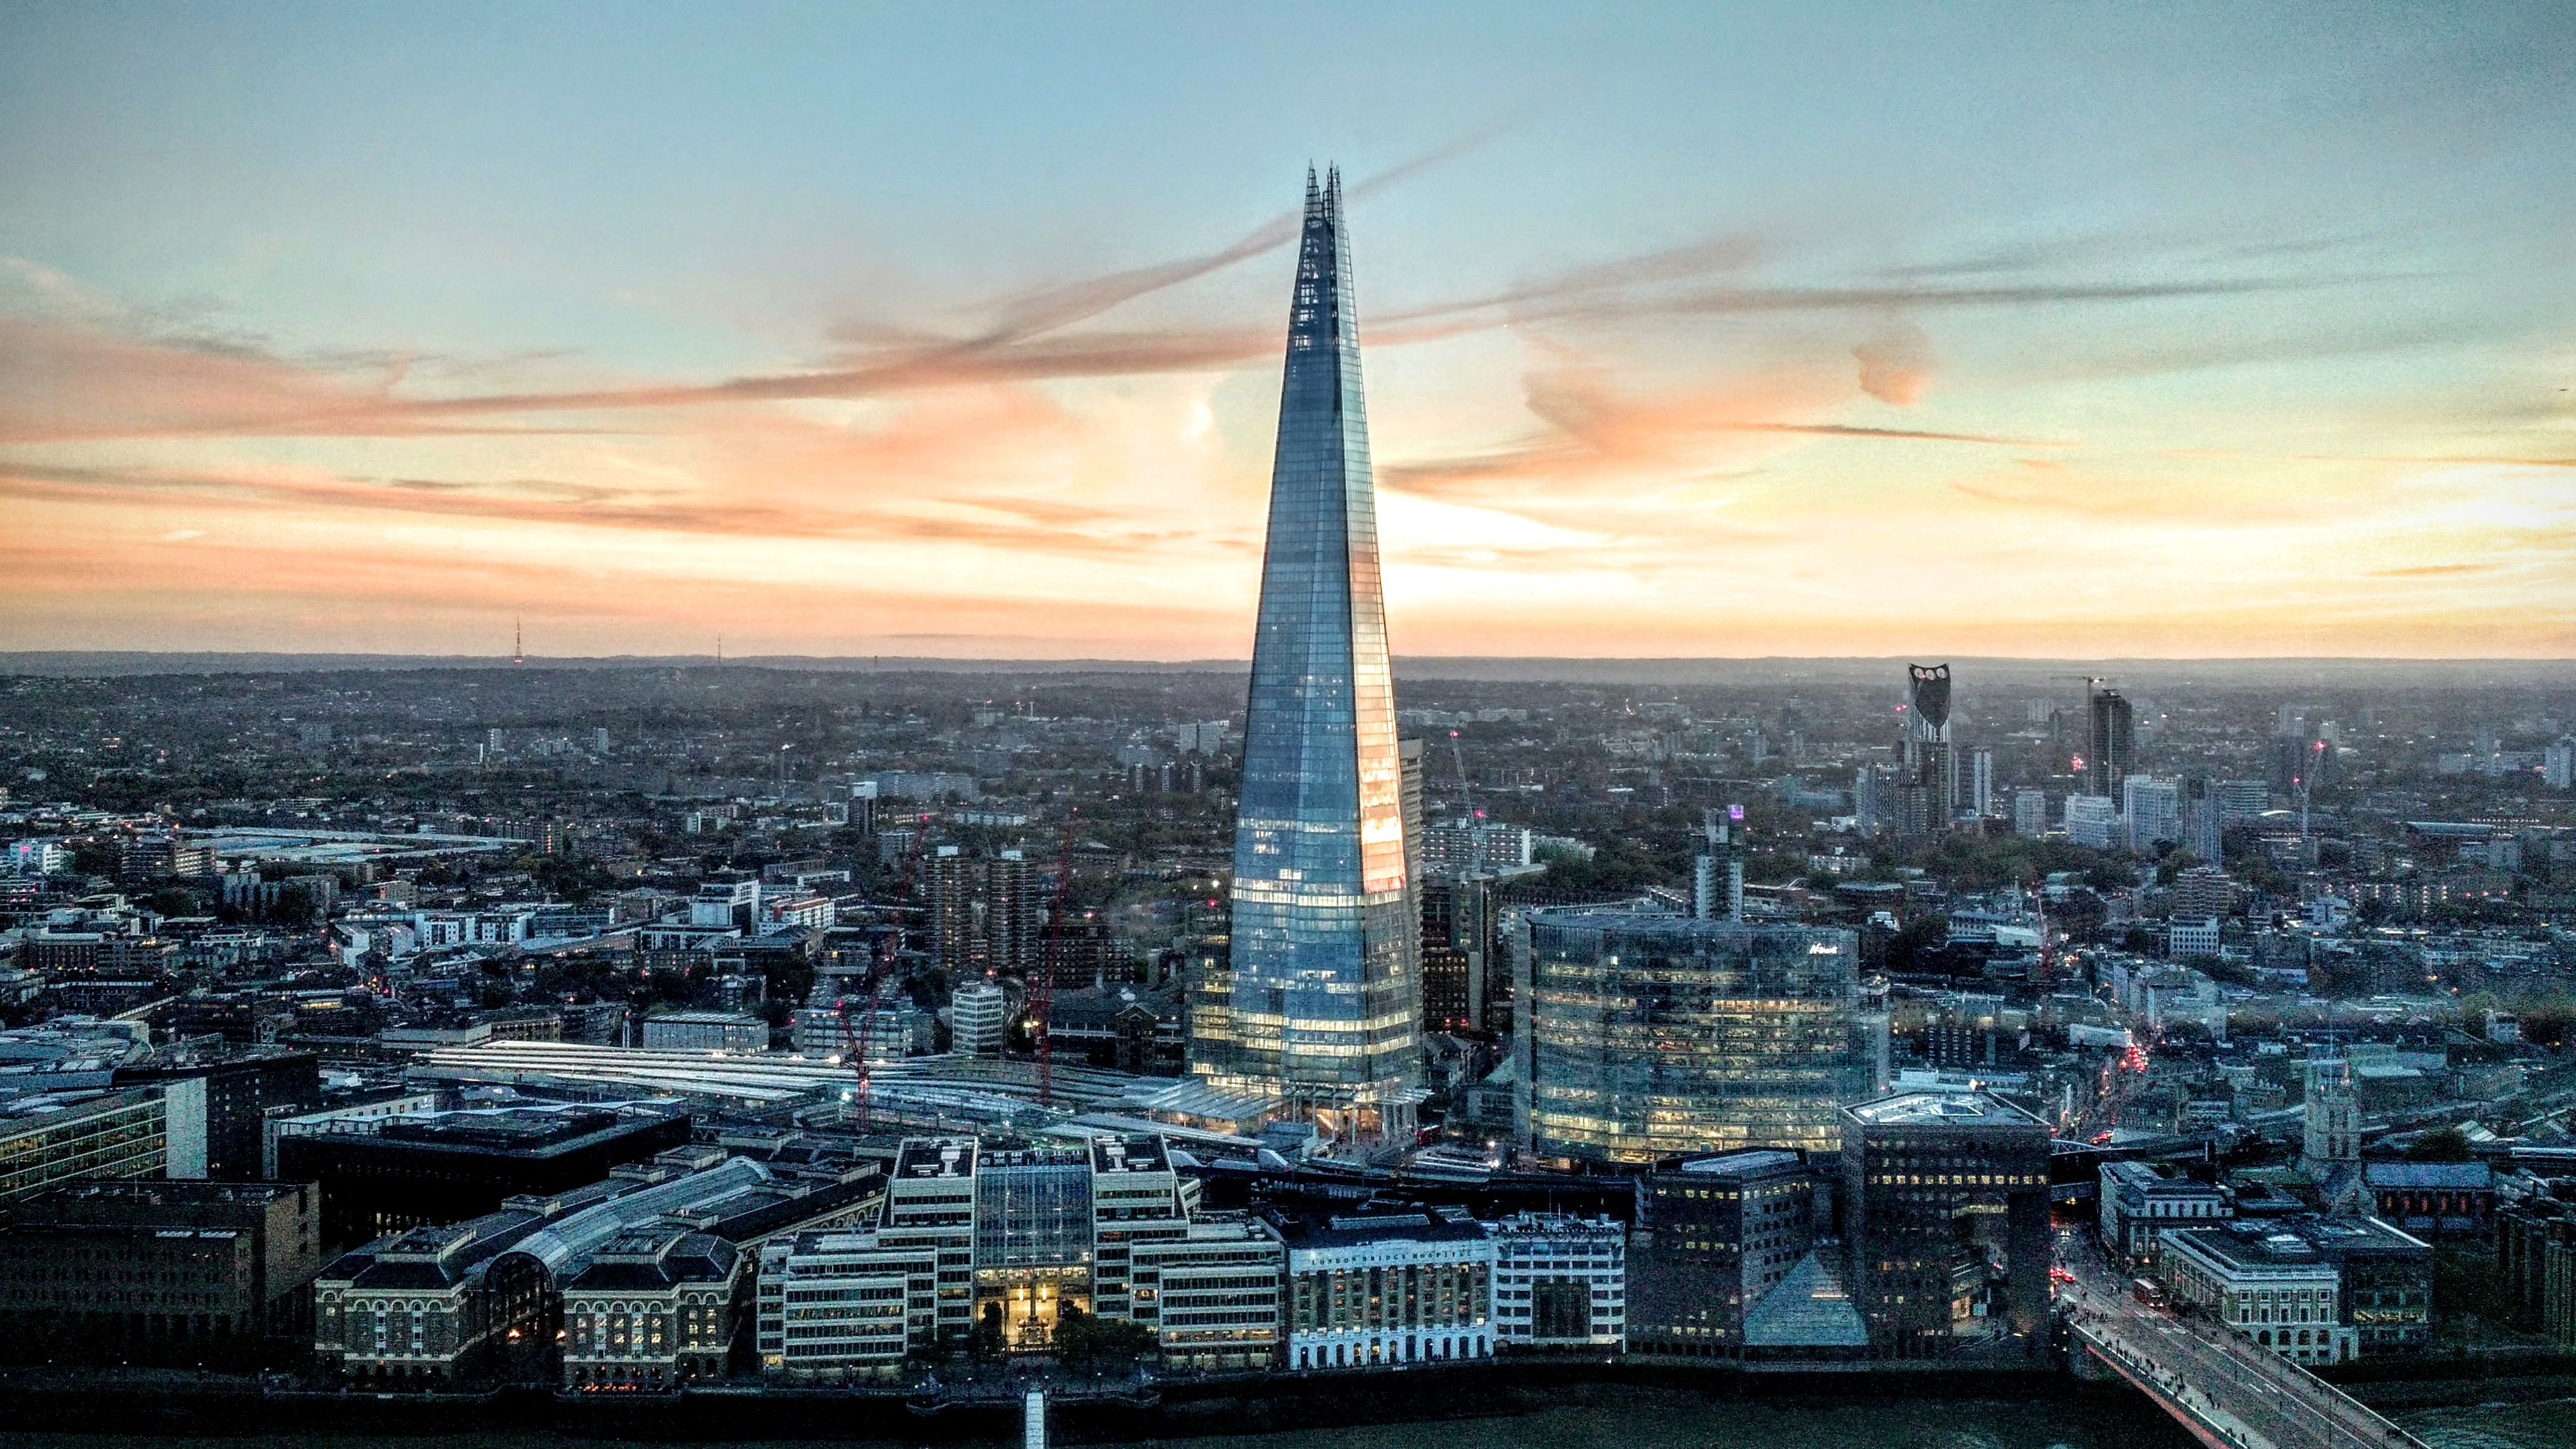 The Shard skyscraper against the skyline of London during sunset